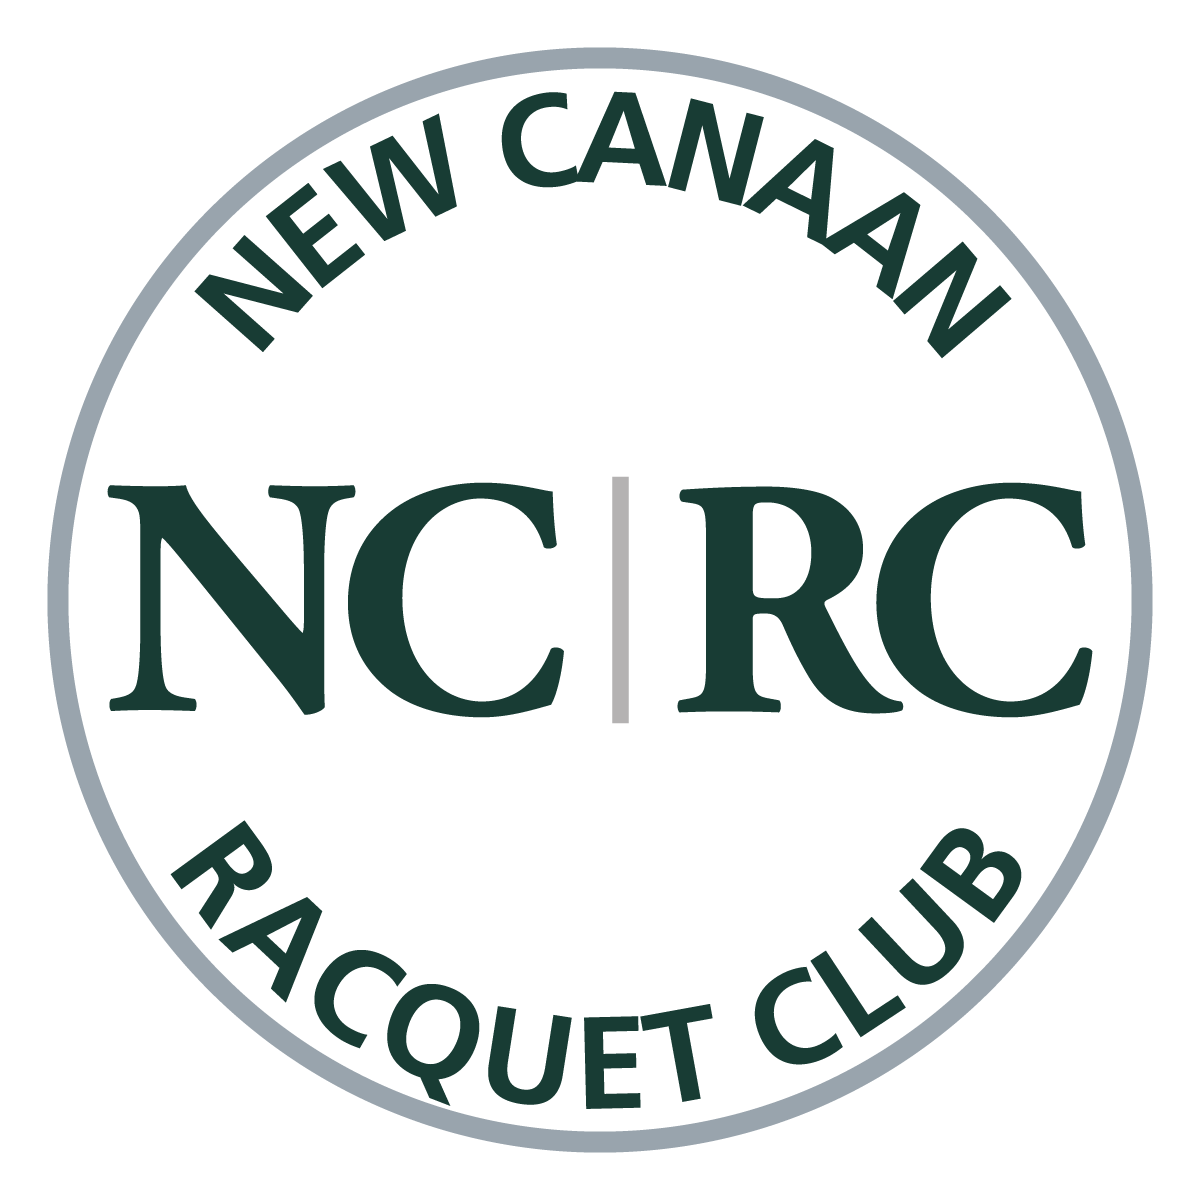 New Canaan Racquet Club